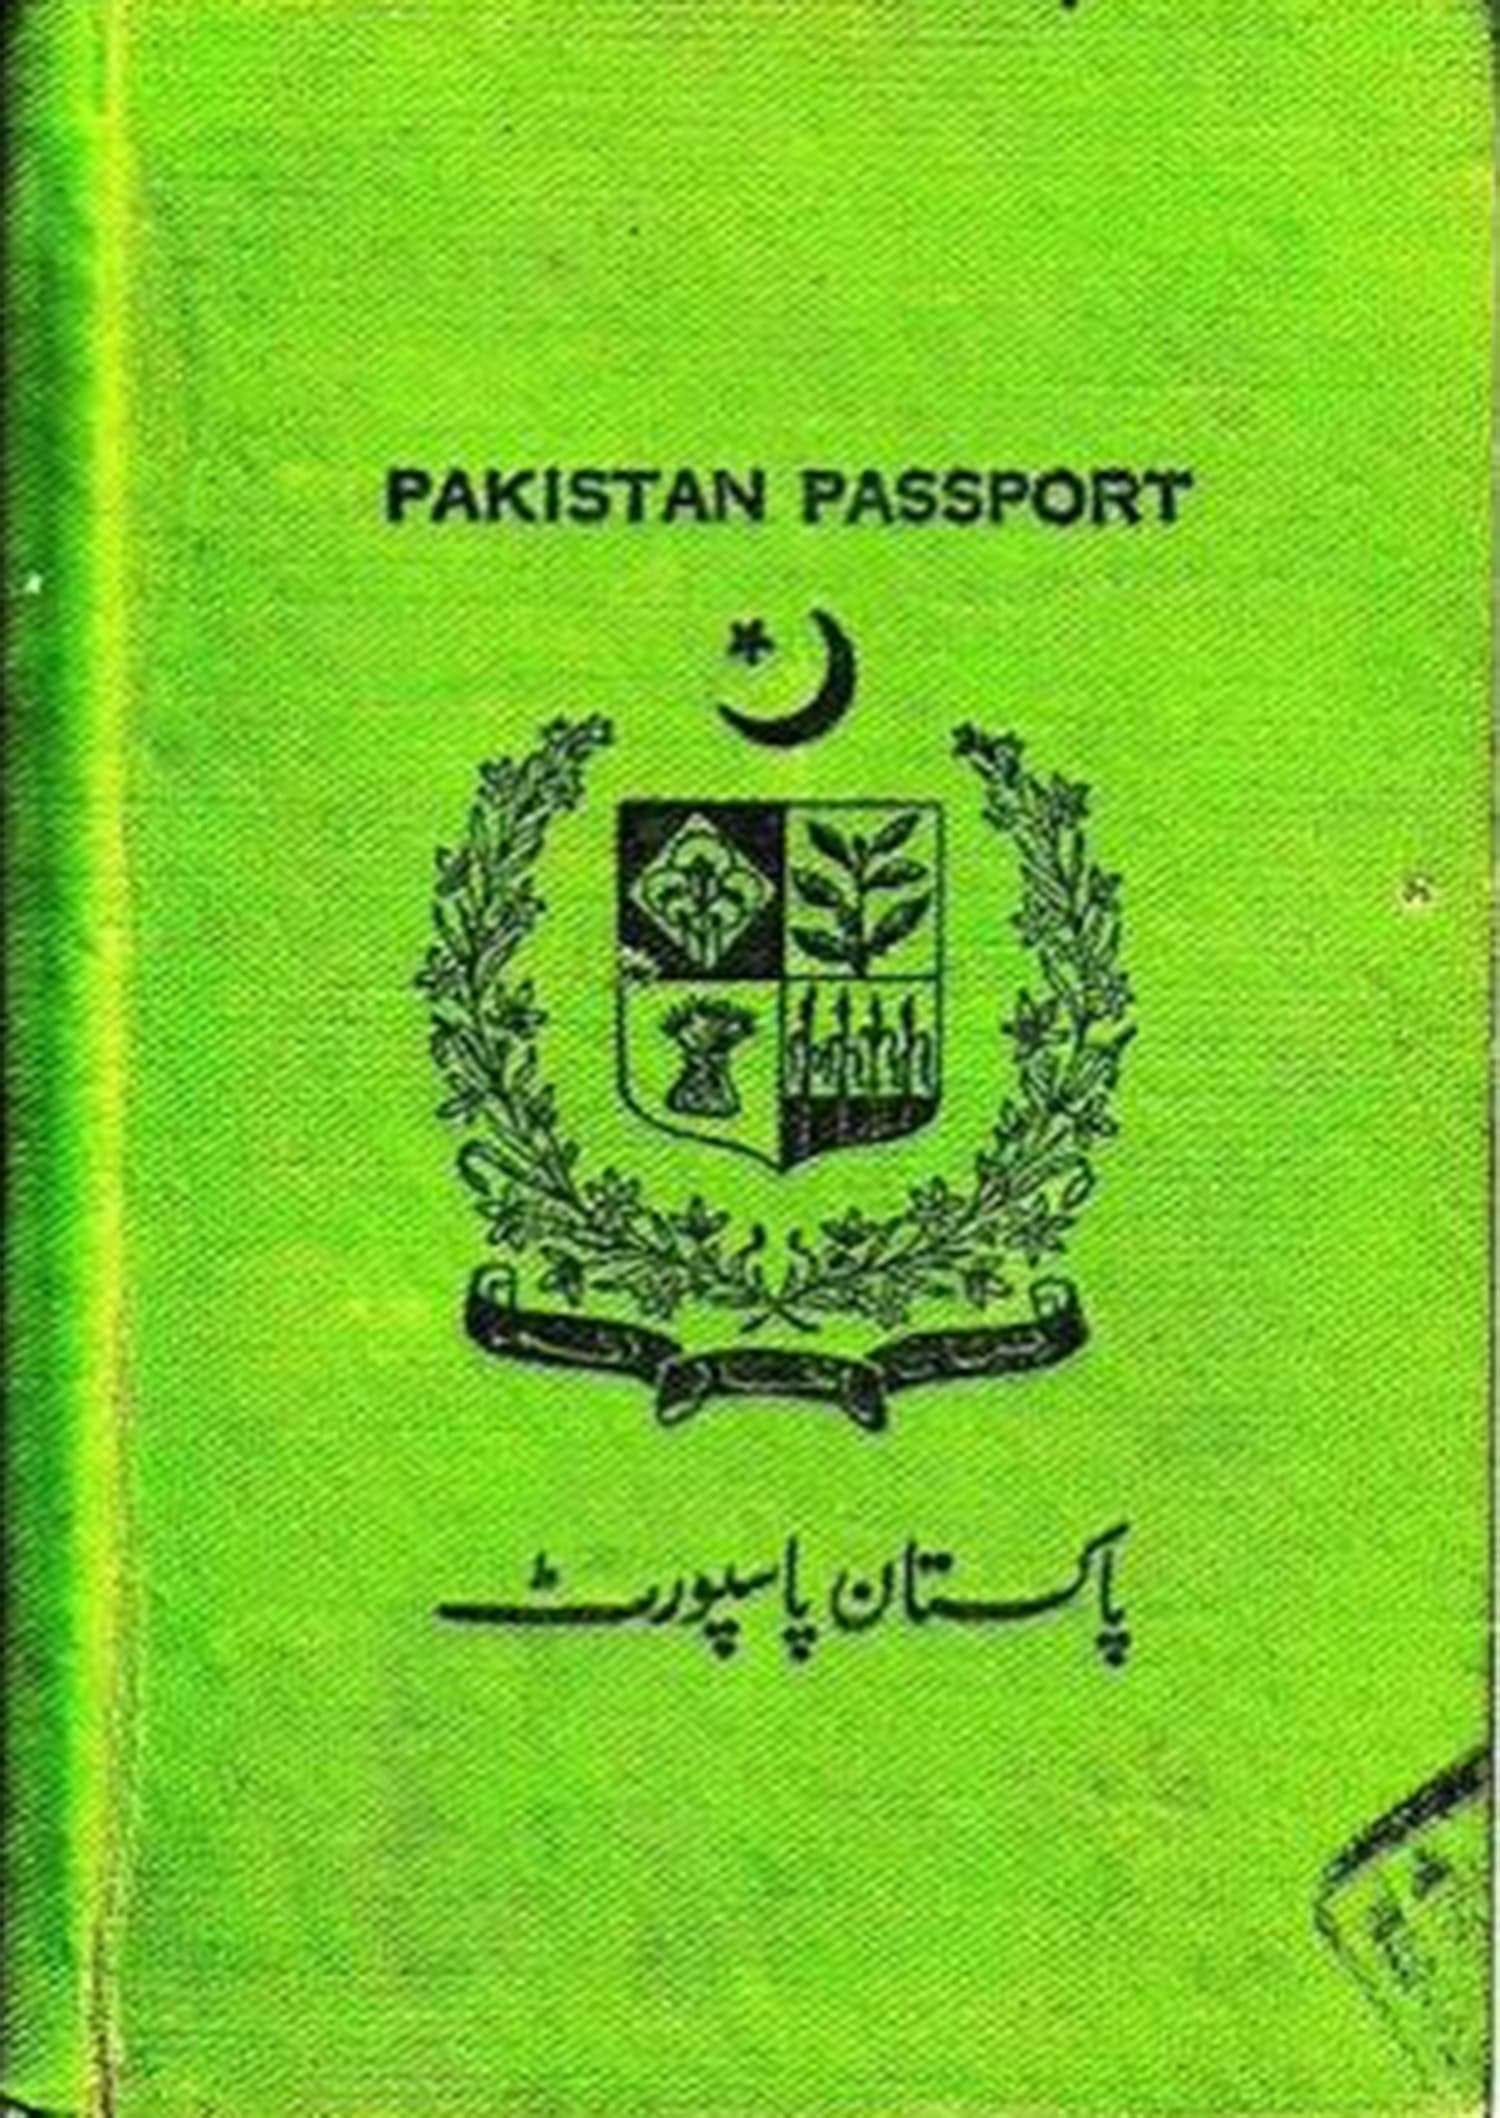 Pakistani passport during Ayub's era